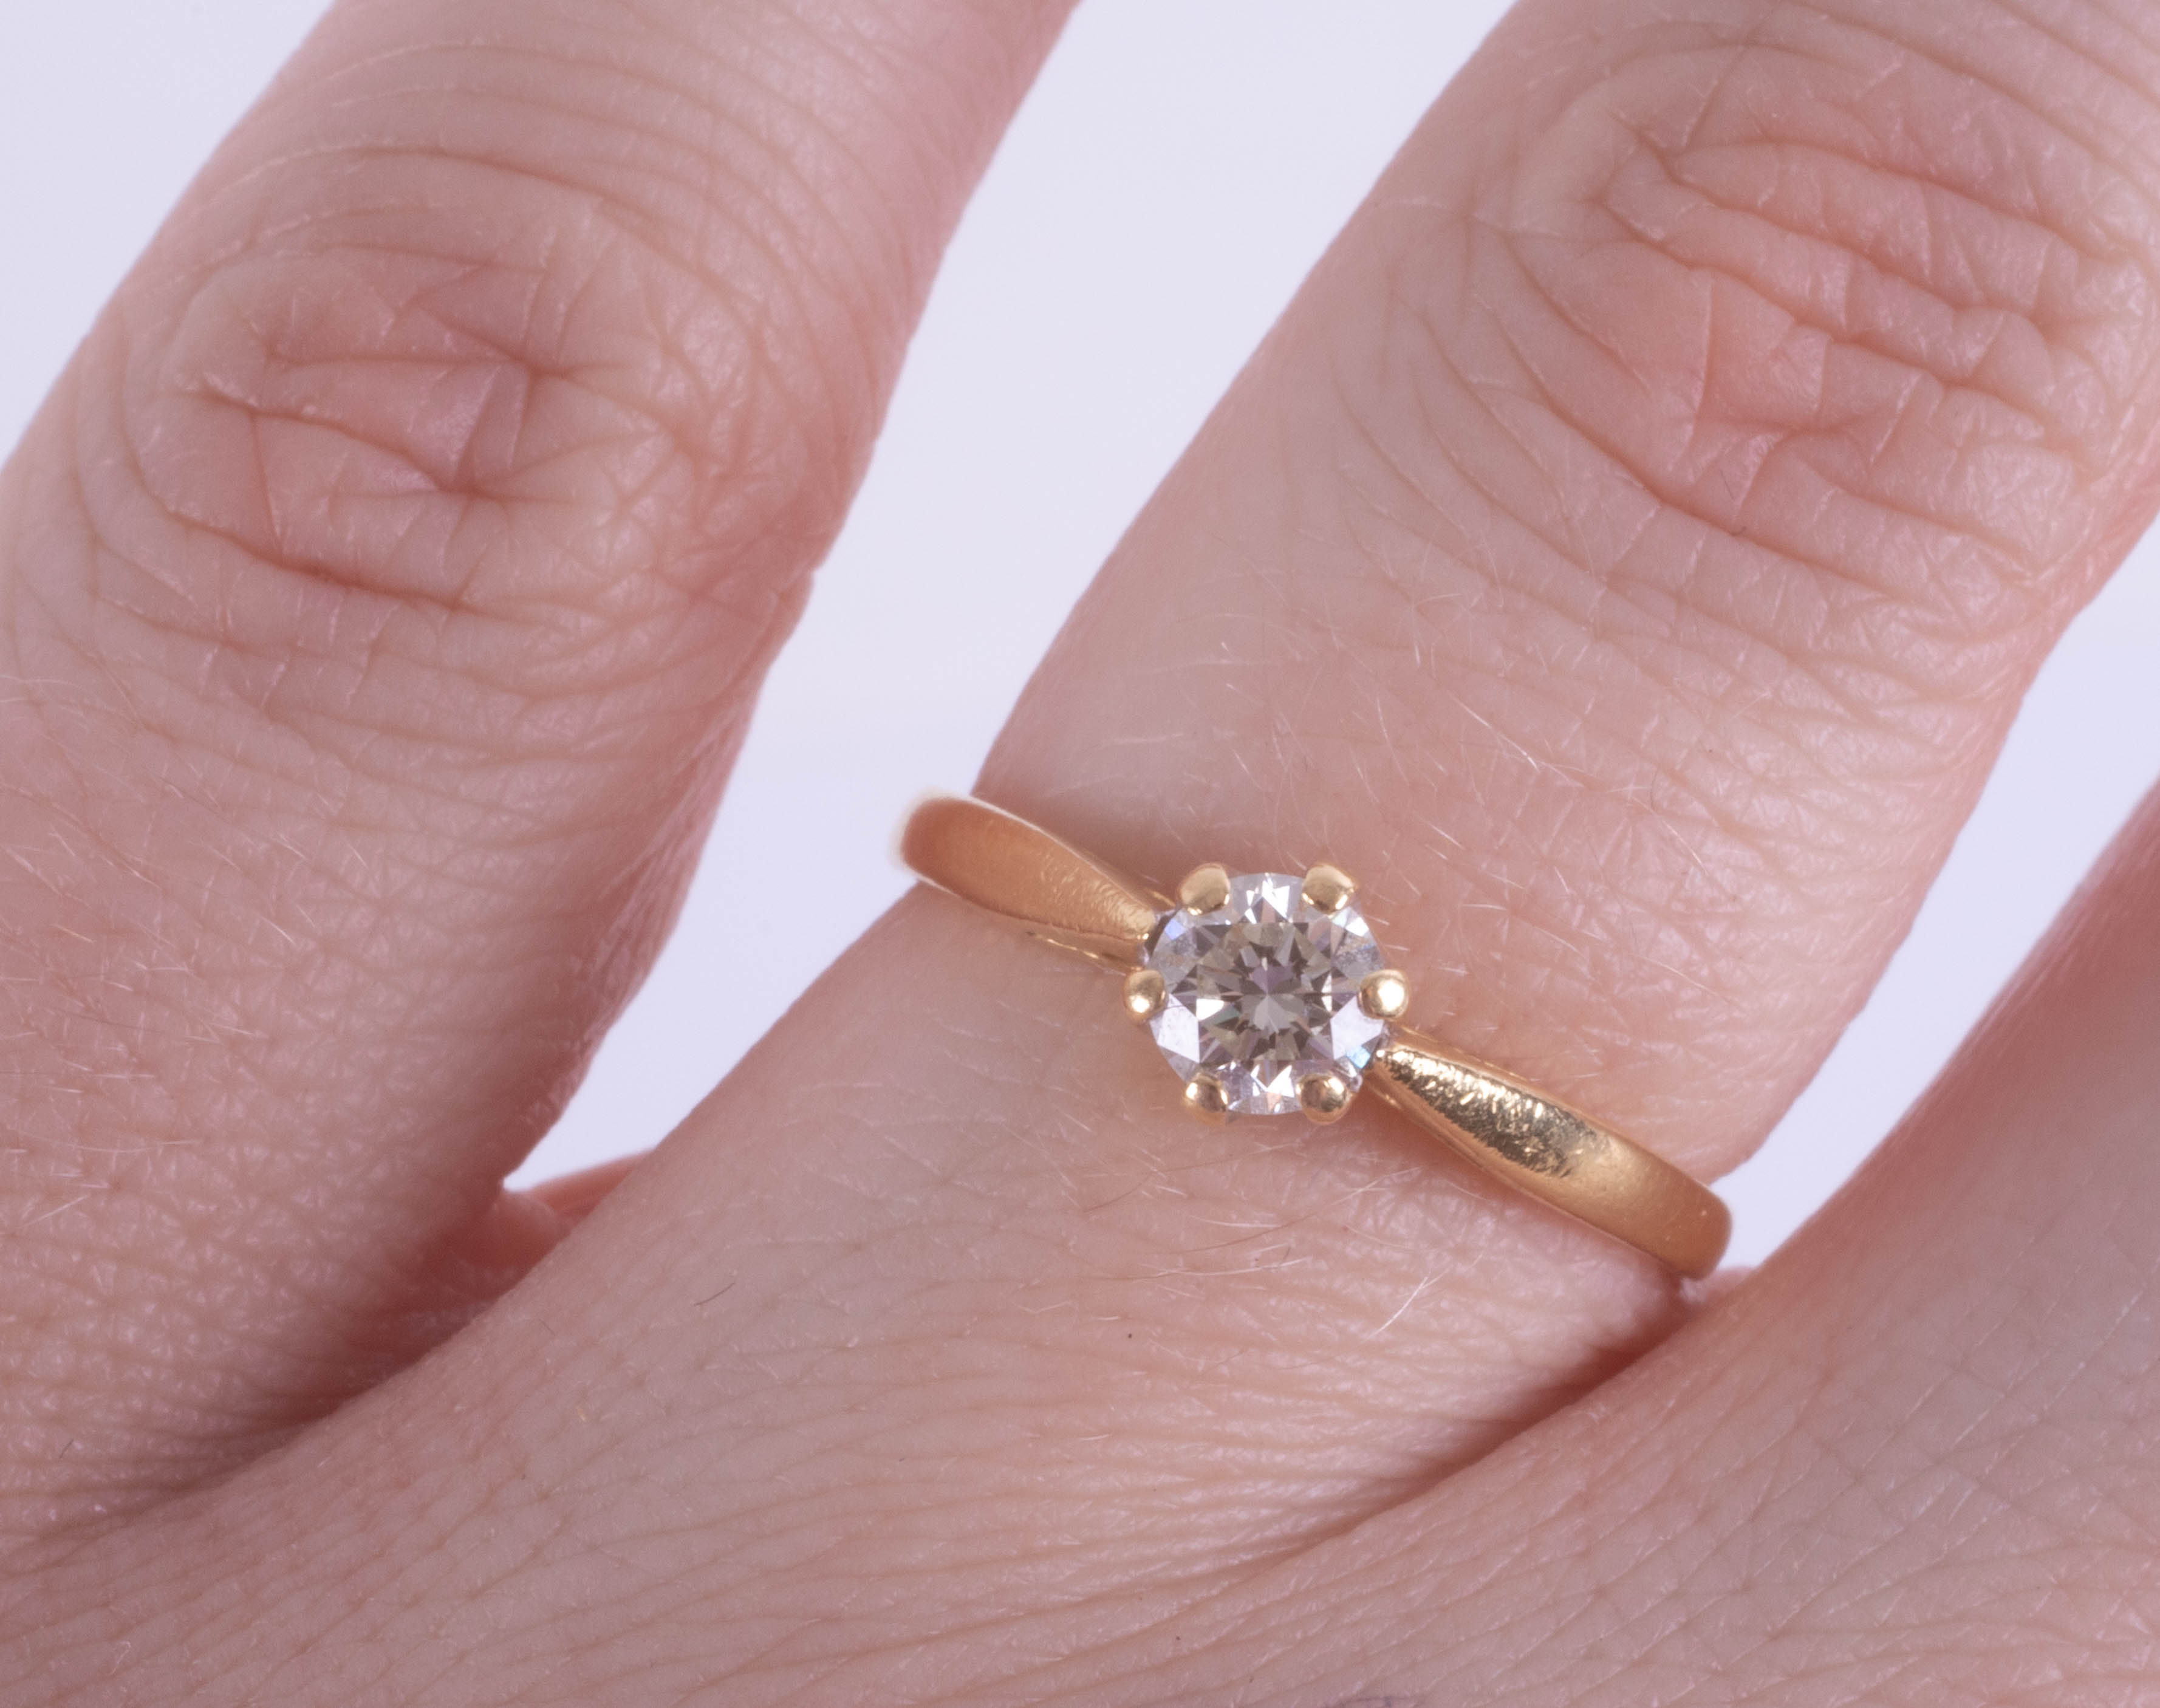 An 18ct yellow gold solitaire ring approx. 0.45ct, ring size K. - Image 2 of 2